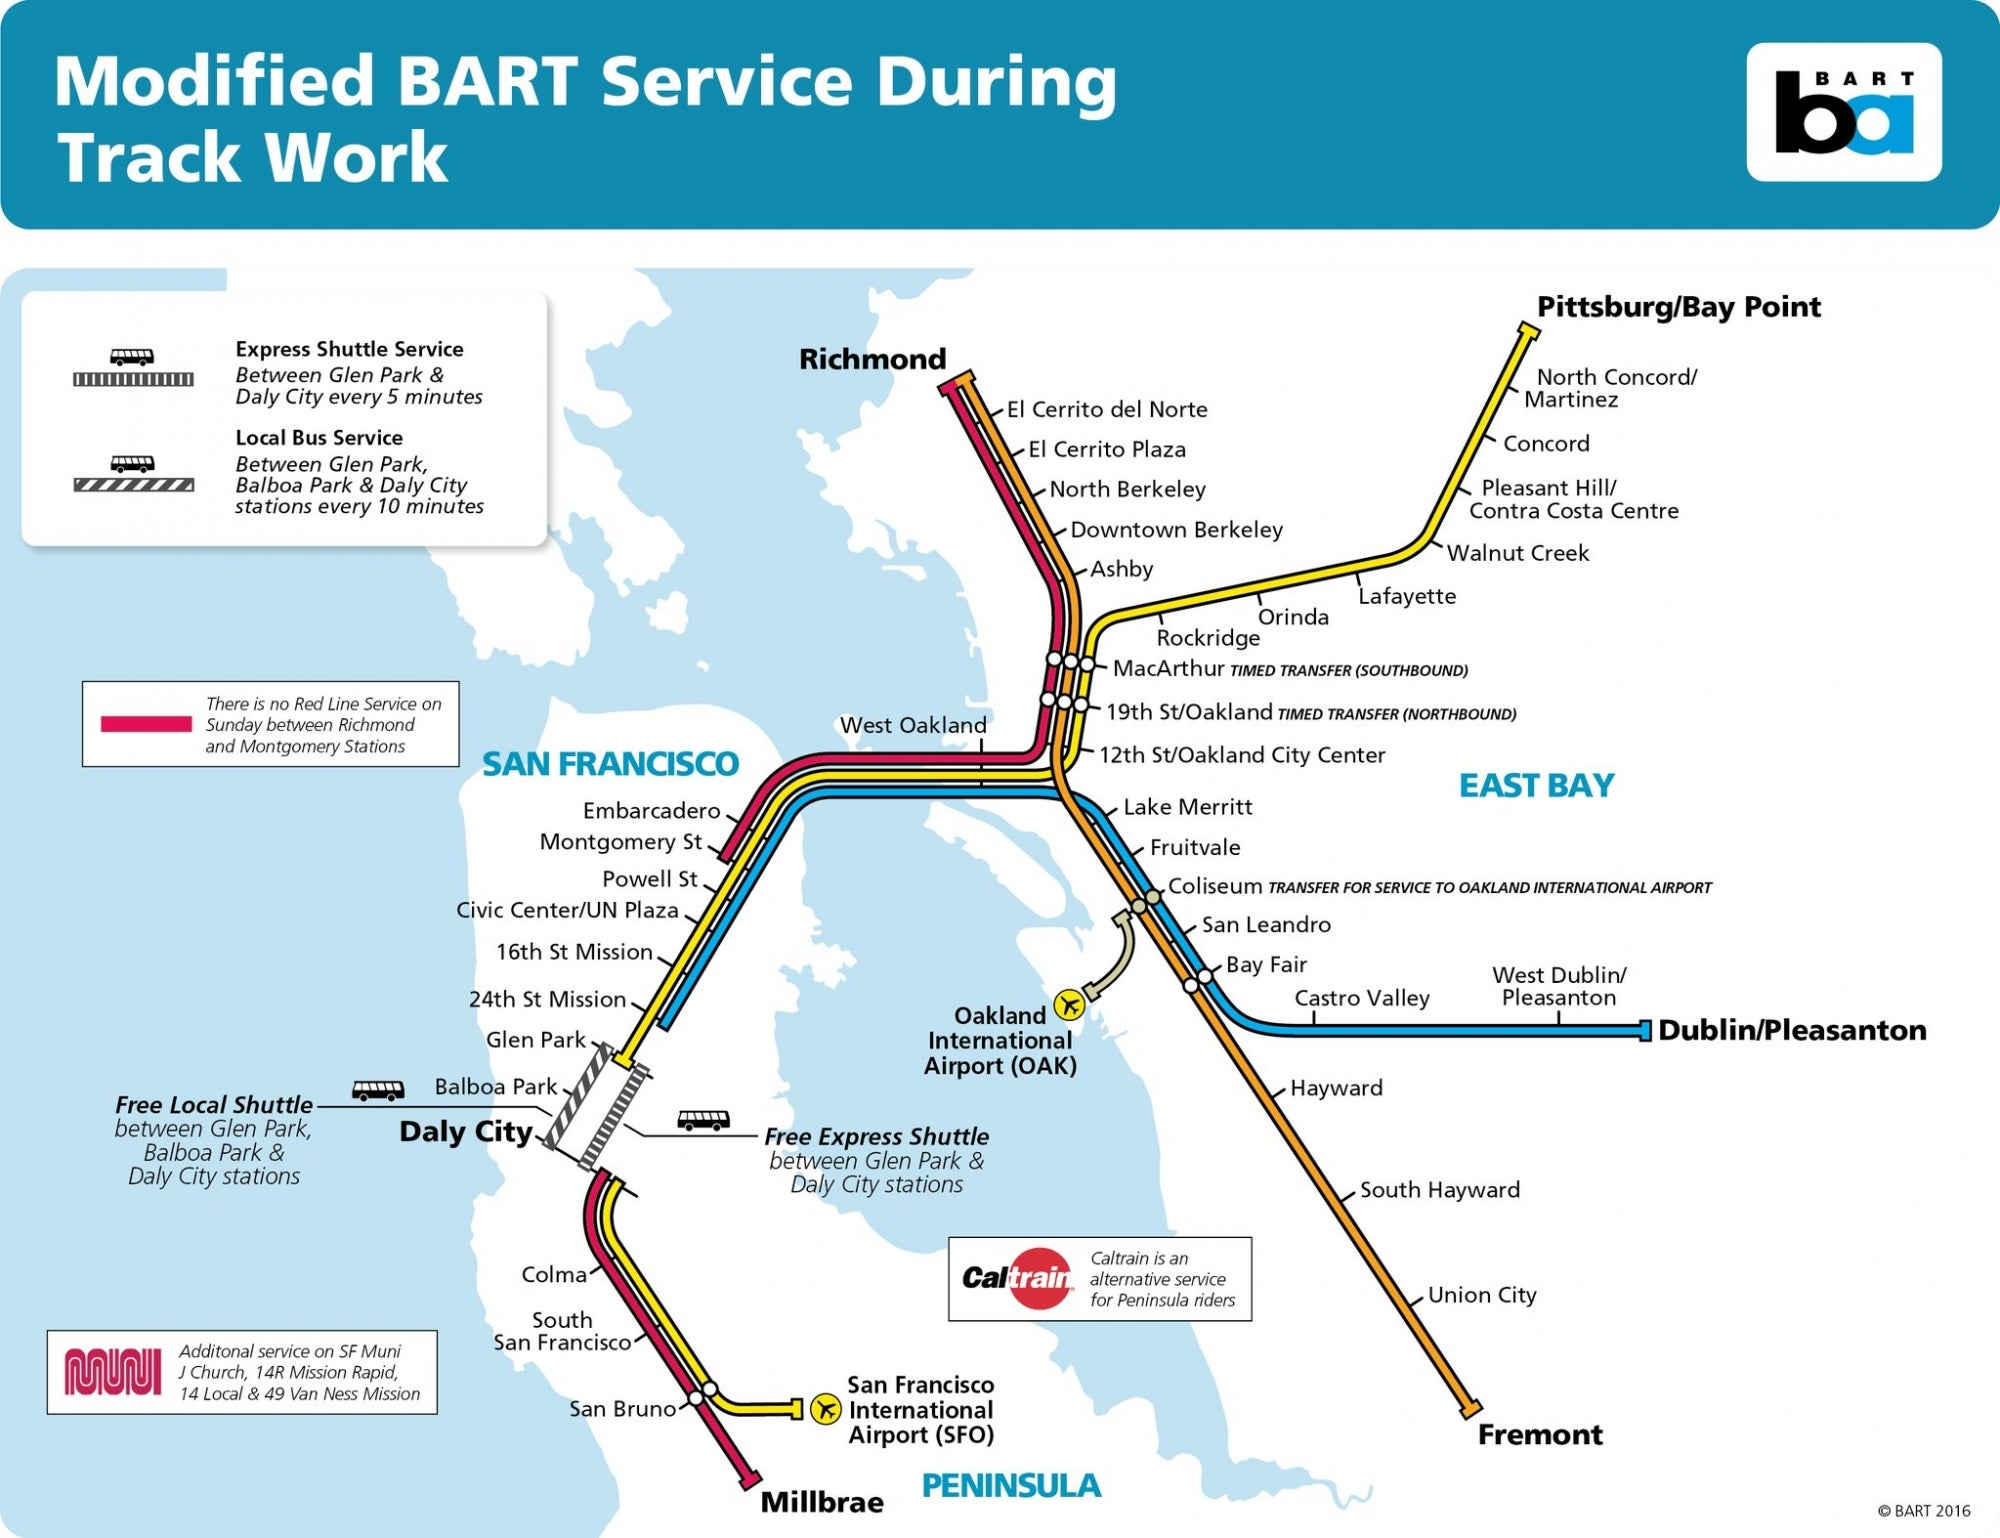 BART Modifies Weekend Service to Perform Needed Track Work Through